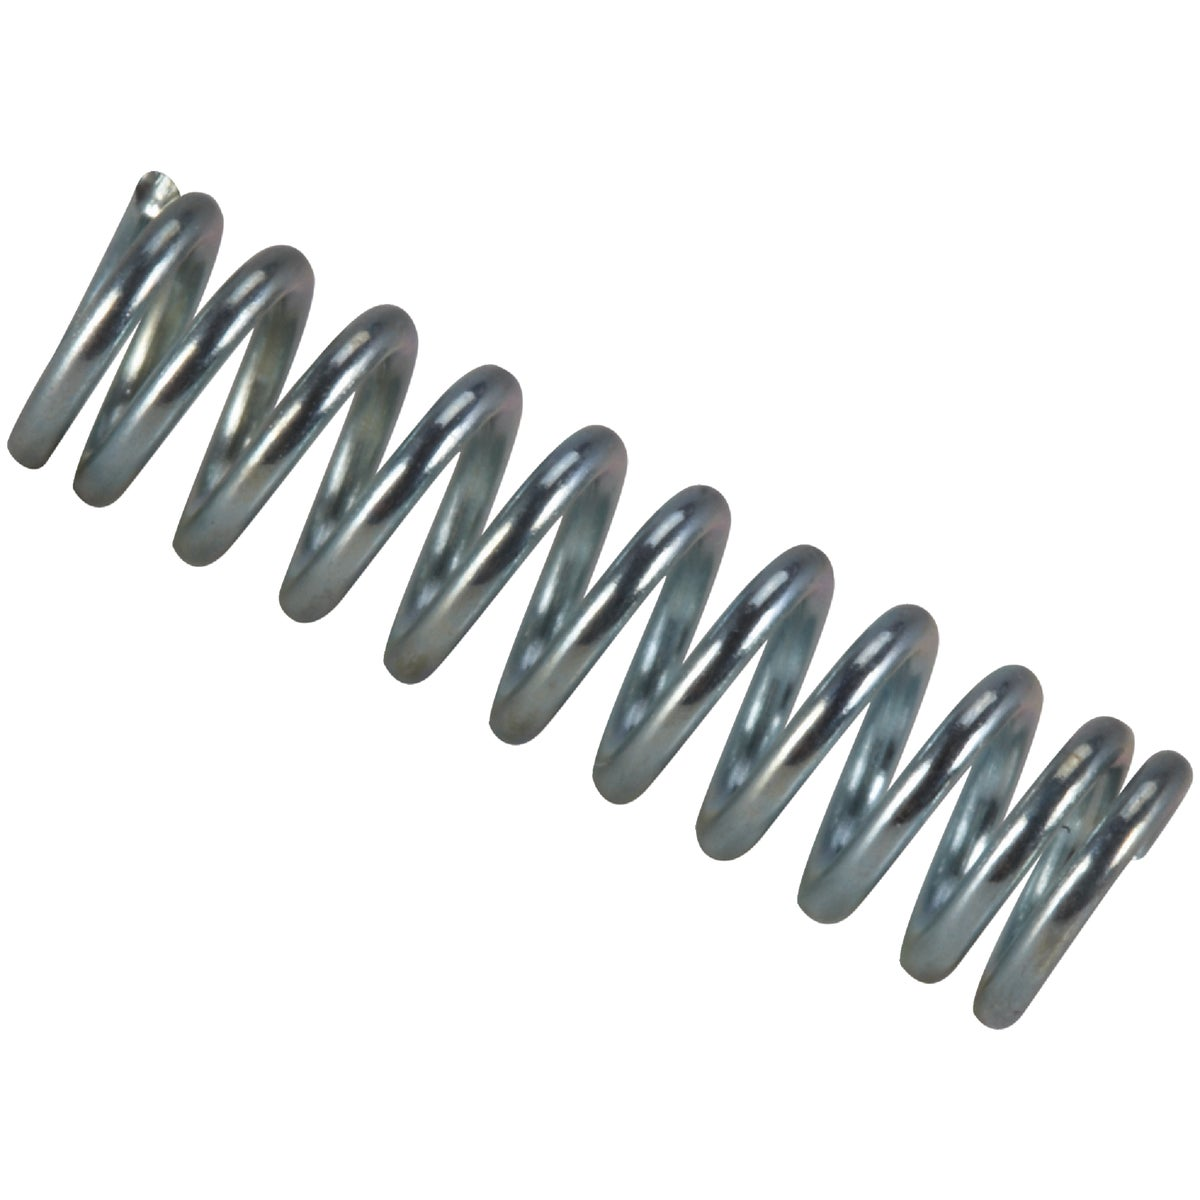 COMPRESSION SPRING - C-562 by Century Spring Corp